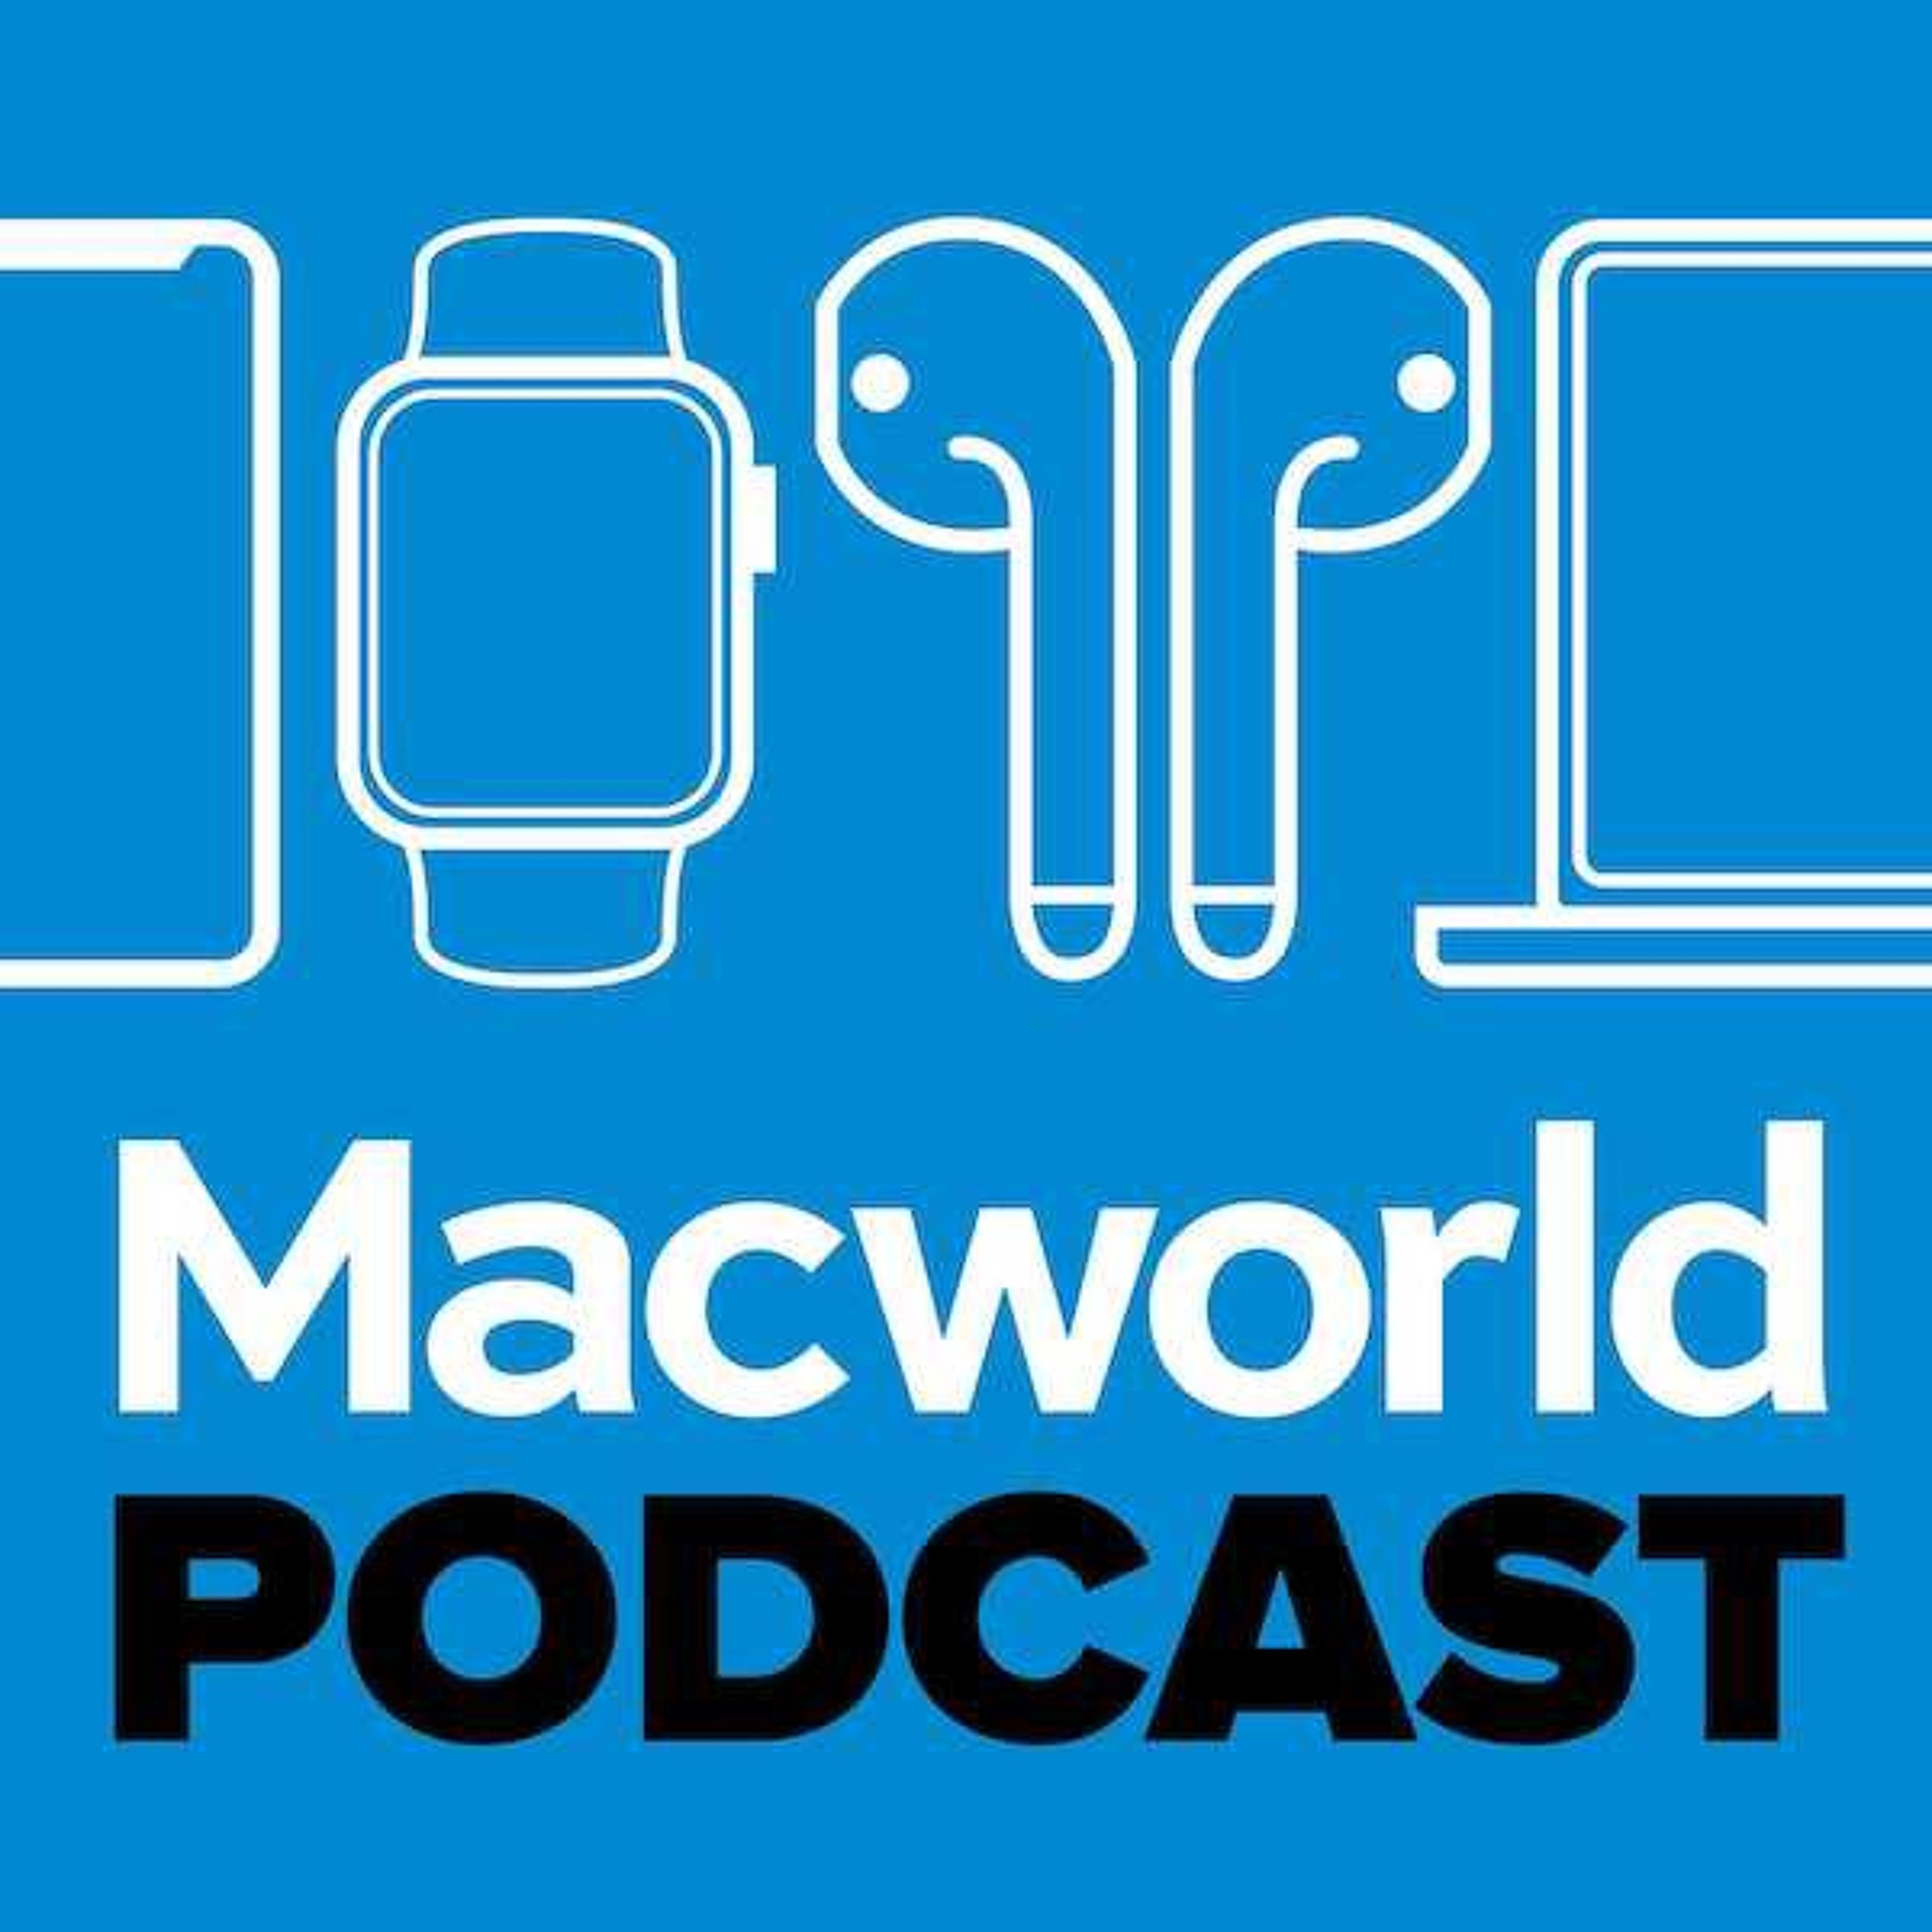 Episode 754: Macworld is so wrong about Safari and the Touch Bar